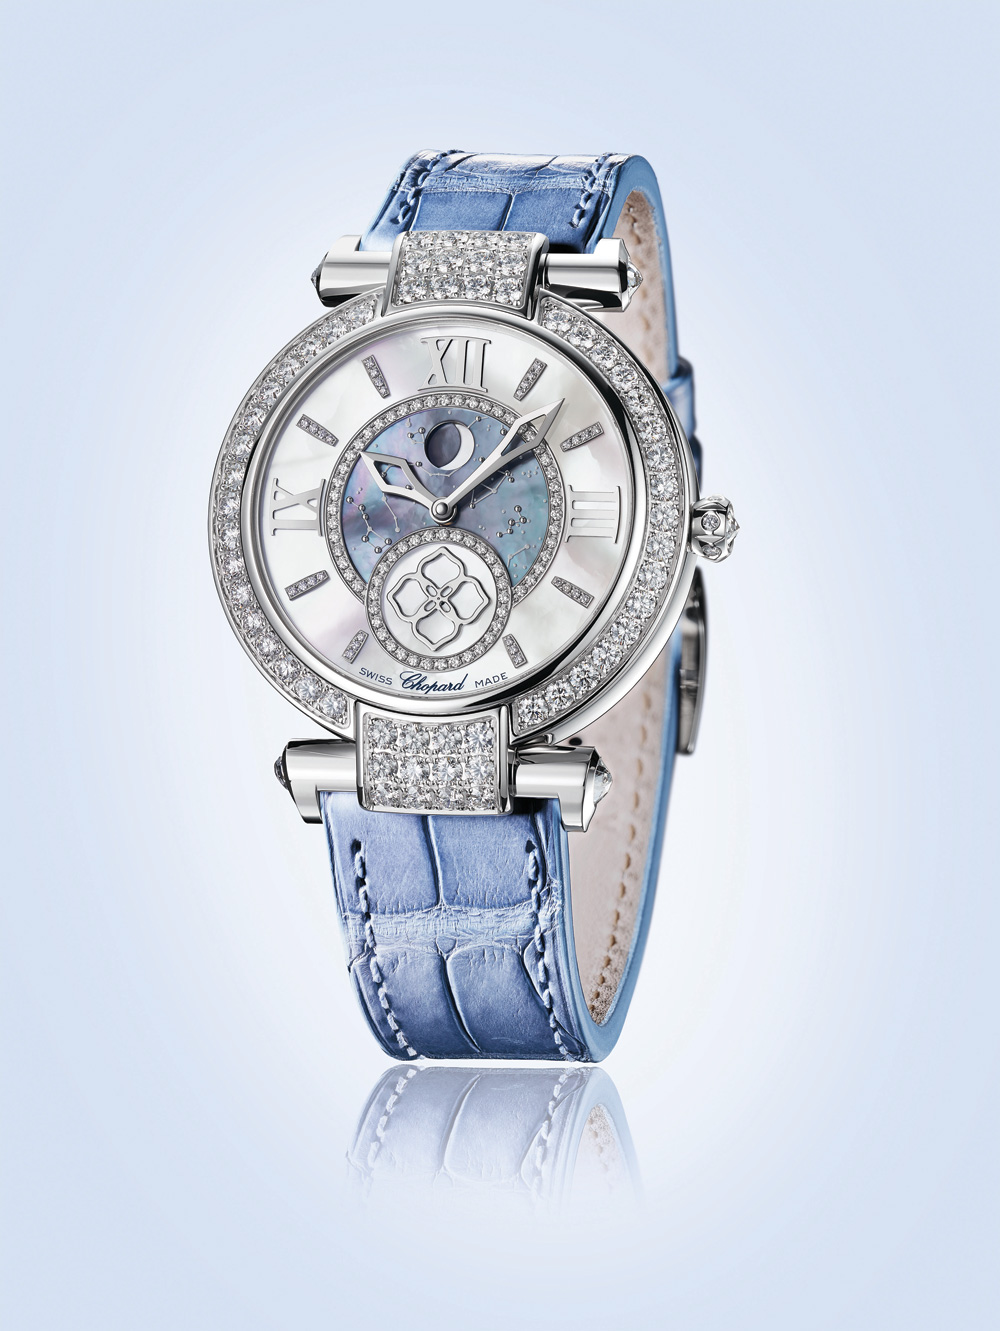 Reloj femenino Imperiale Moonphase de Chopard